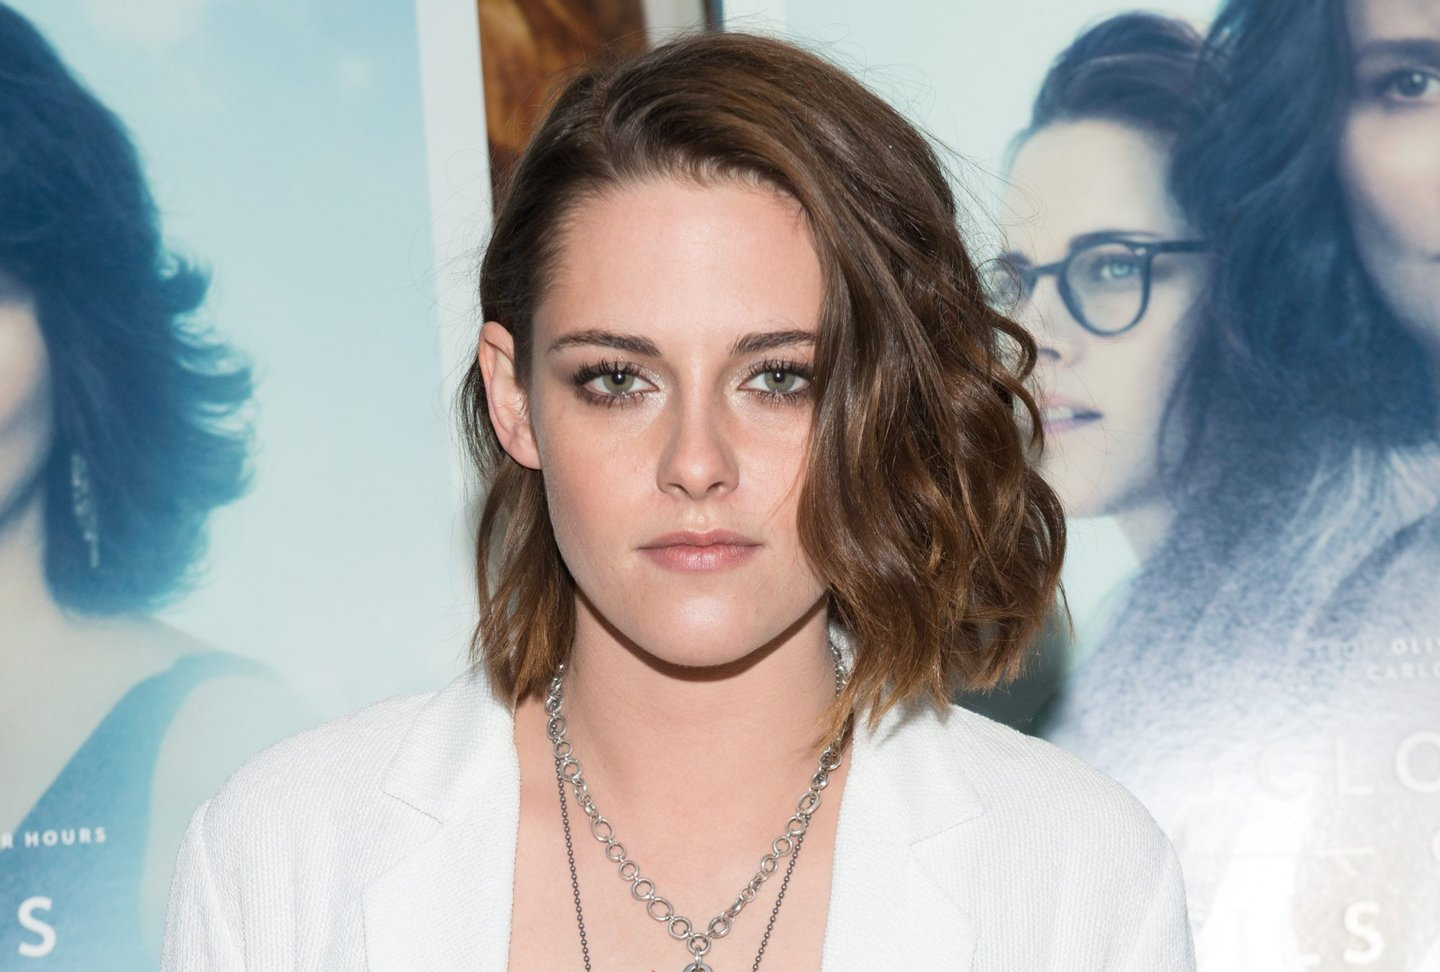 """NEW YORK, NY - JANUARY 03: Actress Kristen Stewart attends a screening of """"Clouds Of Sils Maria"""" at IFC Center on January 3, 2016 in New York City. (Photo by Noam Galai/Getty Images)"""